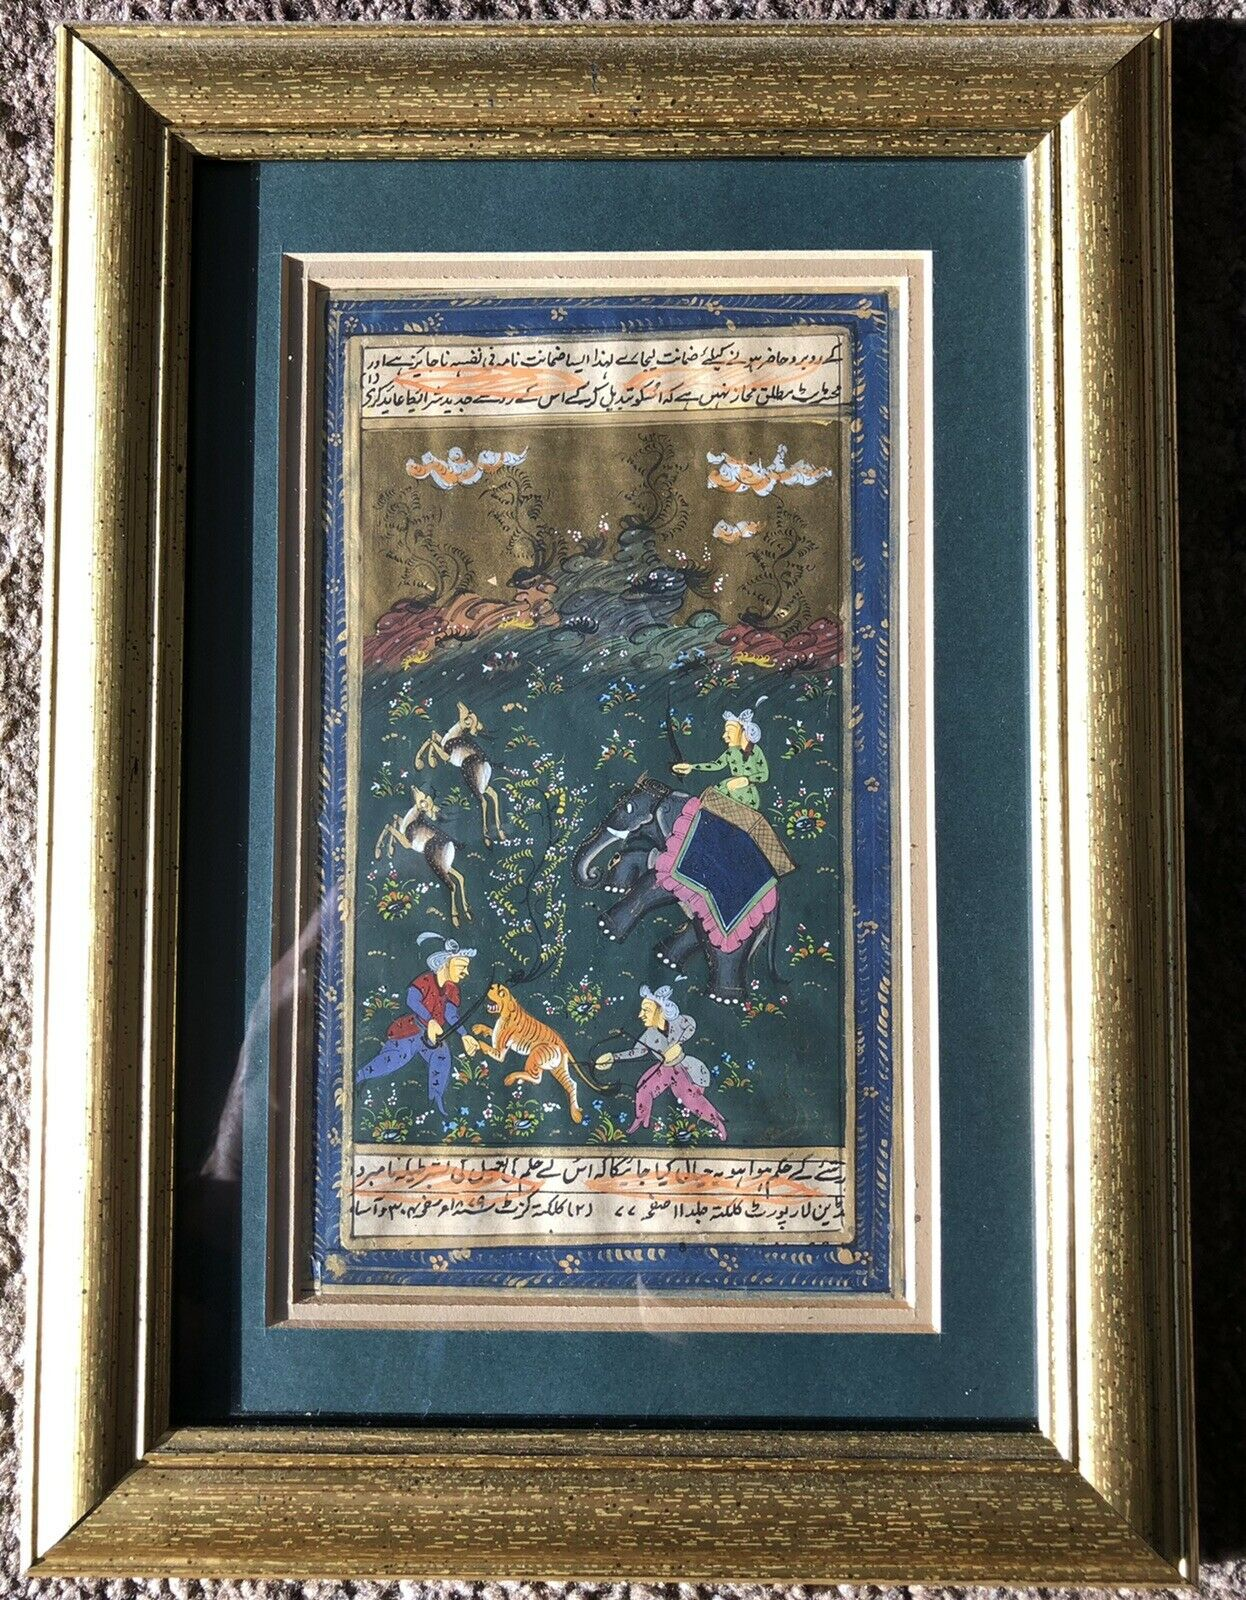 Turkish / Persian / Islamic Painting Art. Framed. Antique.